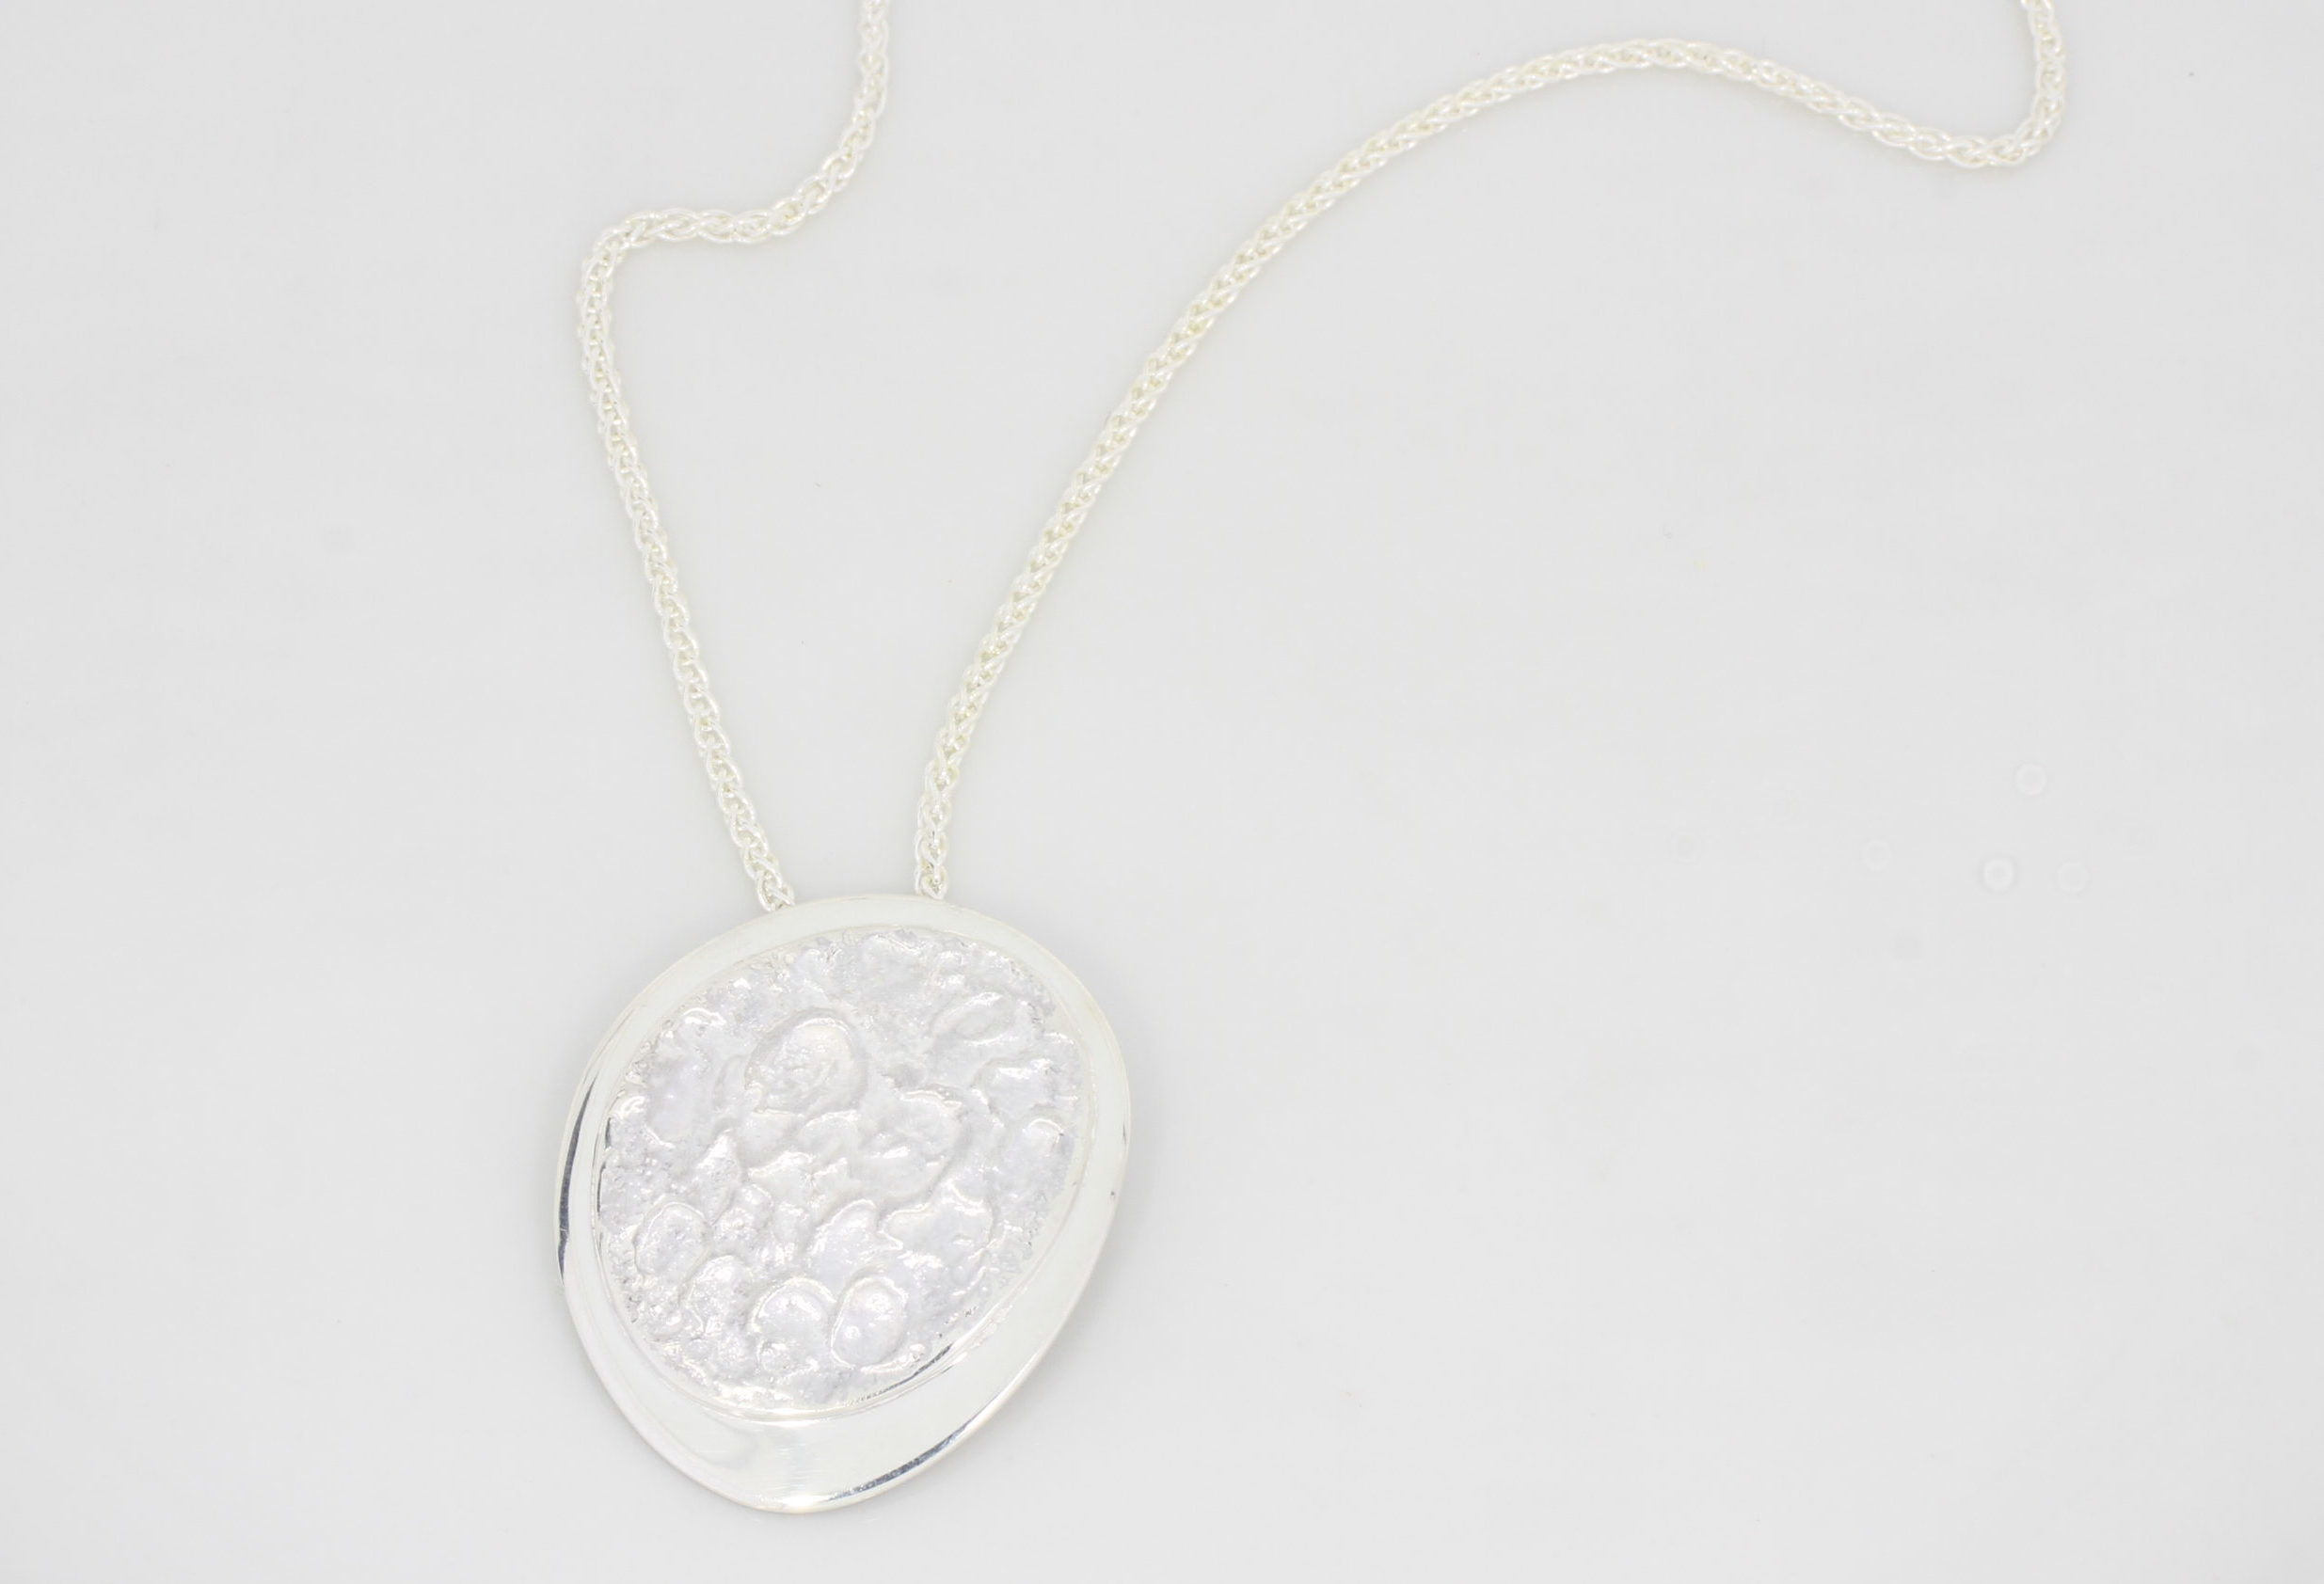 Payet large reticulated pendant